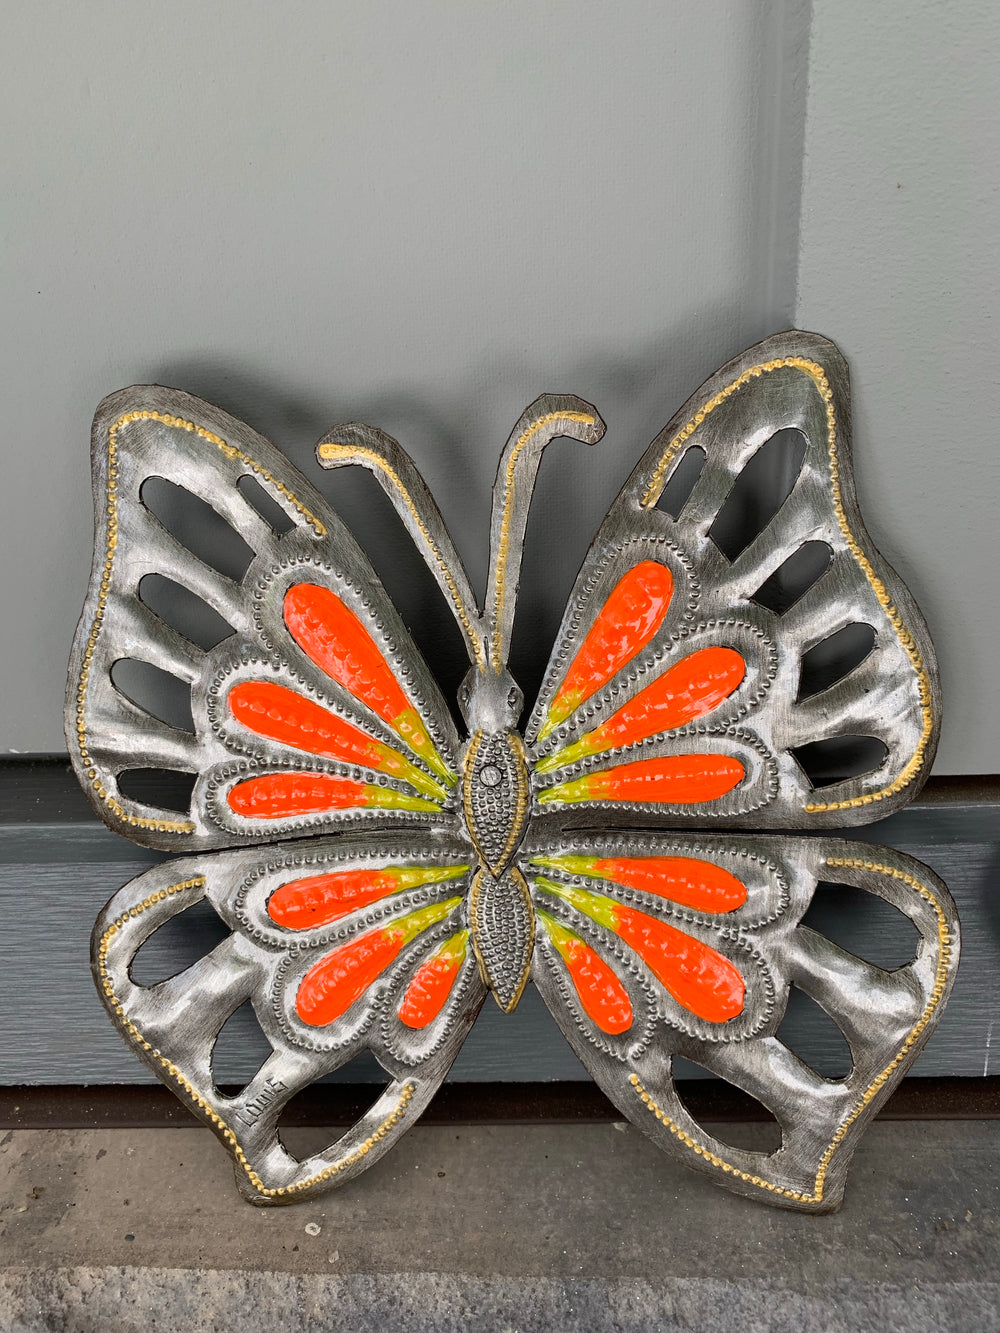 Recycled Steel Drum Butterfly by Singing Rooster from Haiti